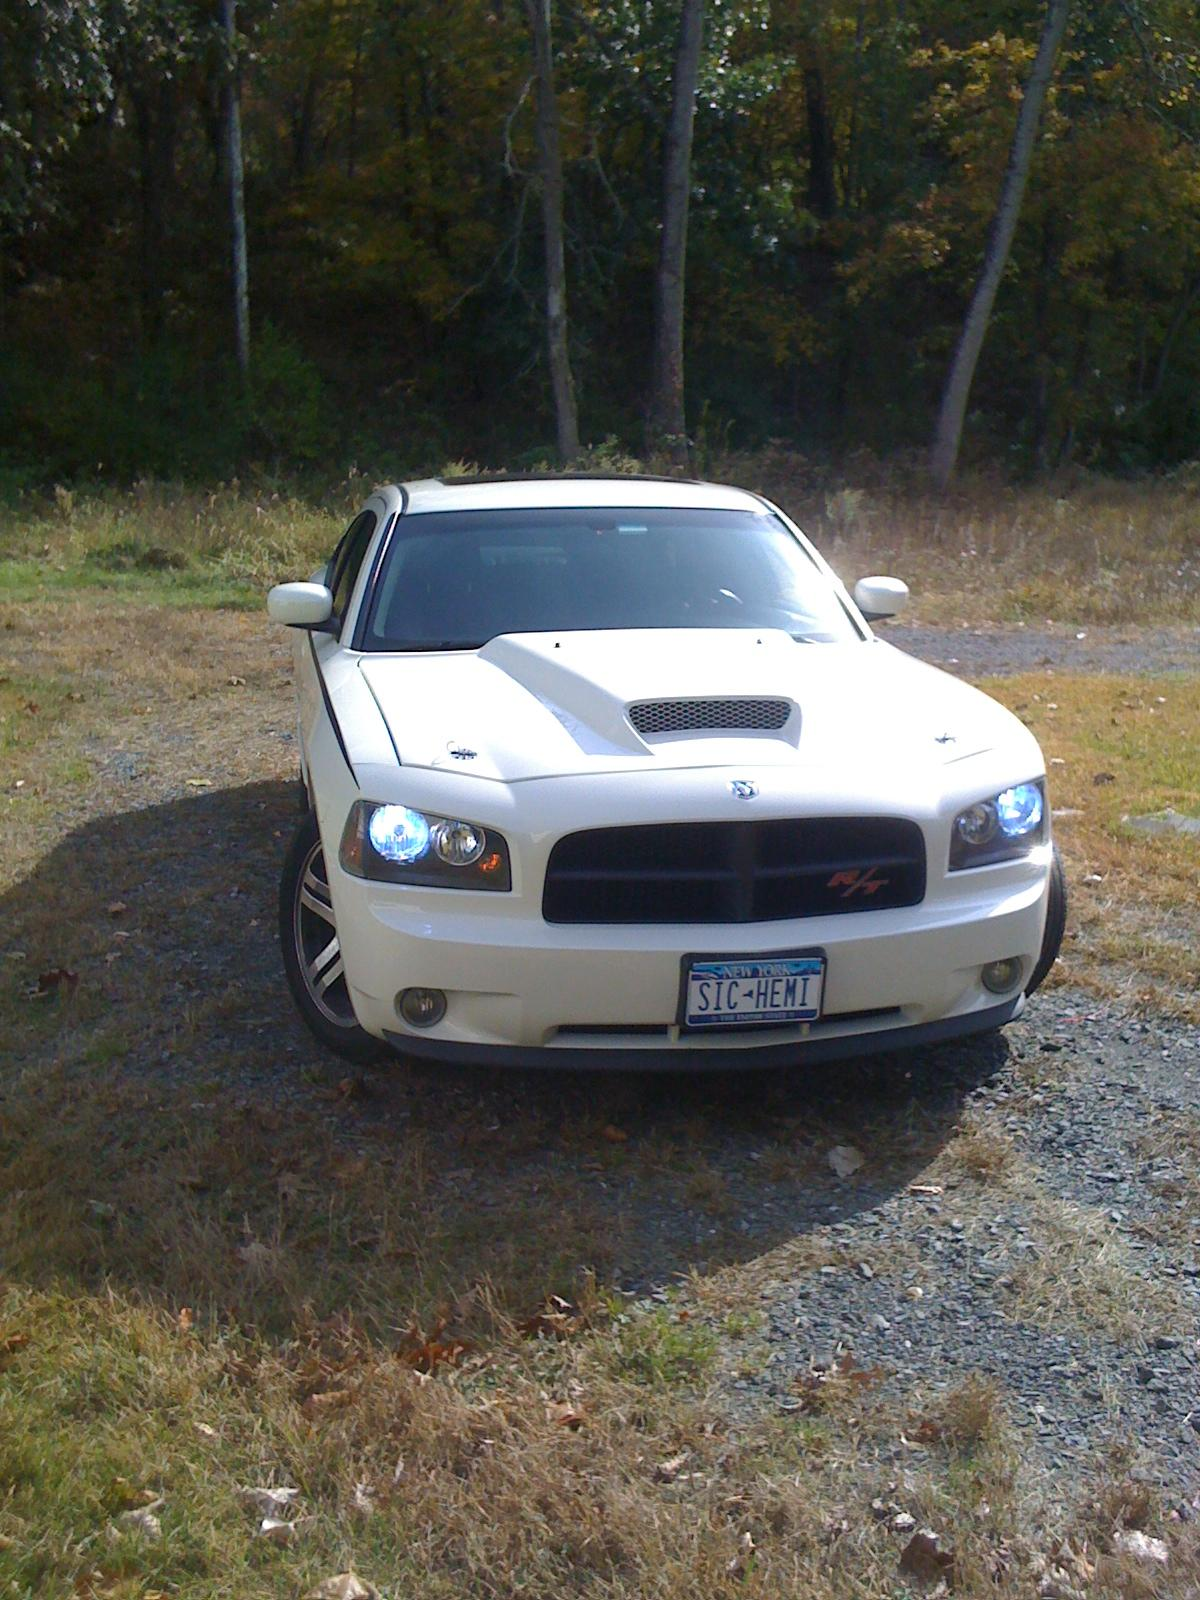 SicHemi 2006 Dodge Charger 13894407